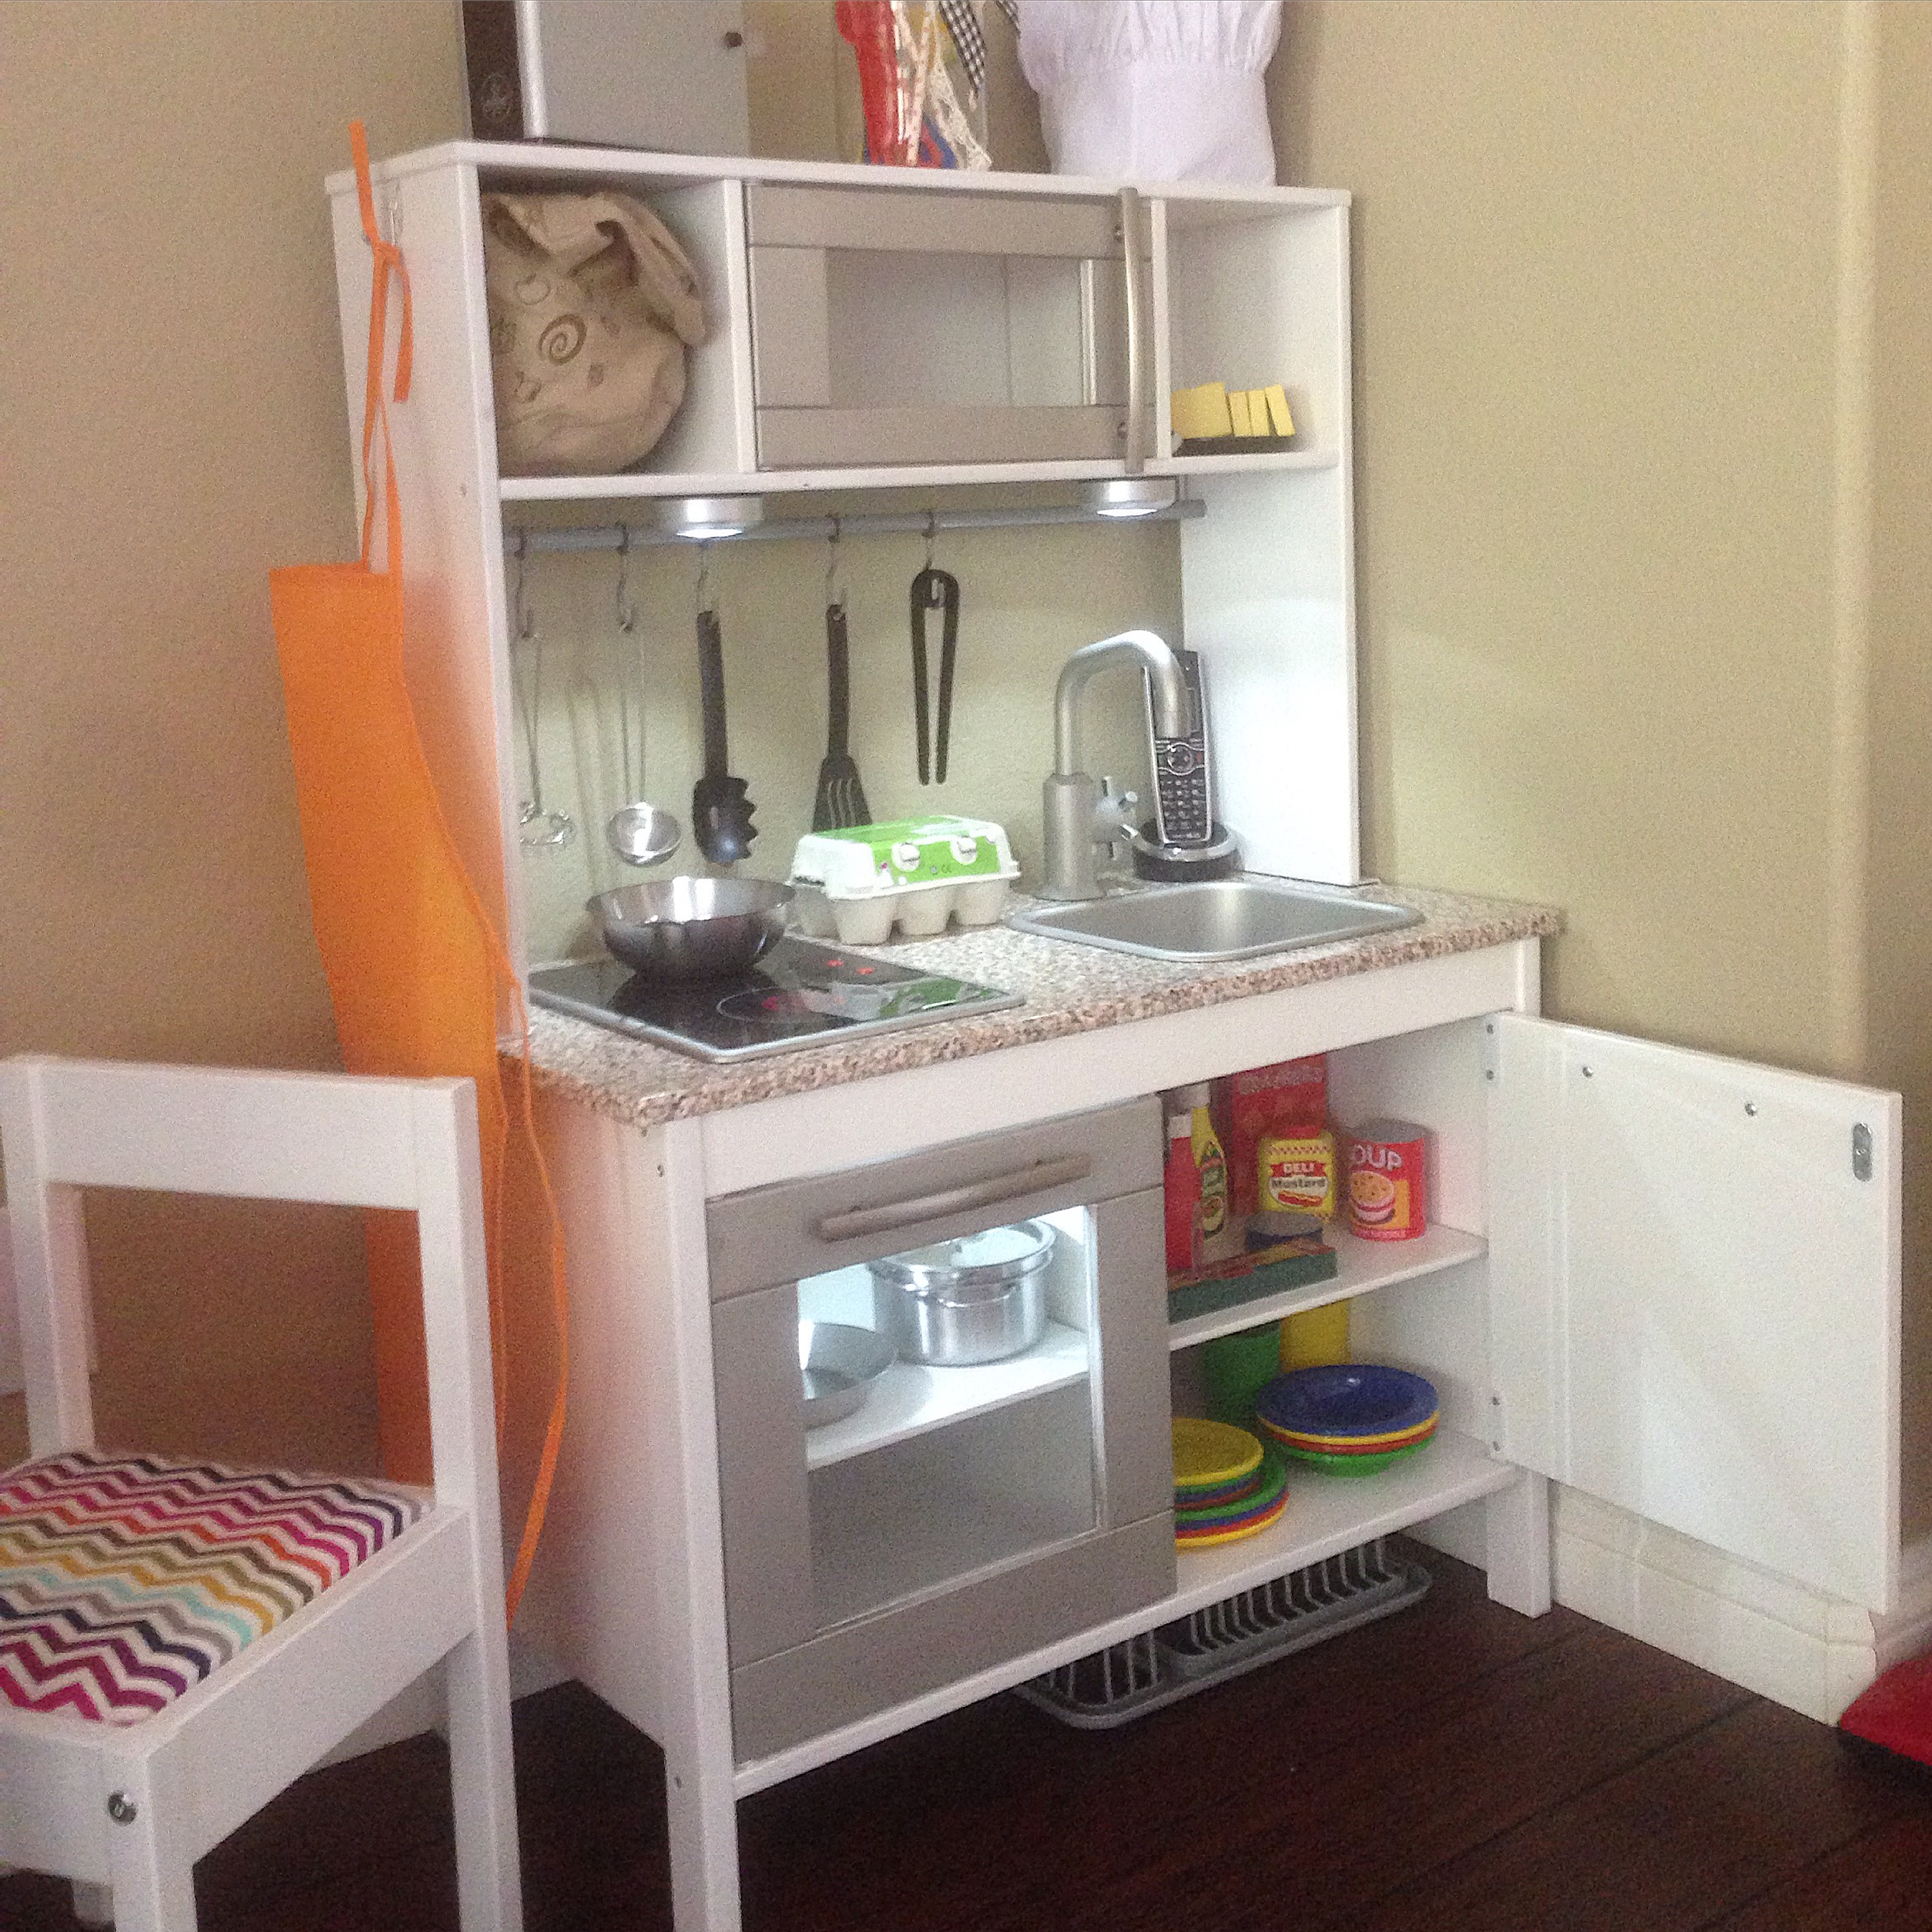 Ikea duktig play kitchen hack our cone zone for Email ikea com